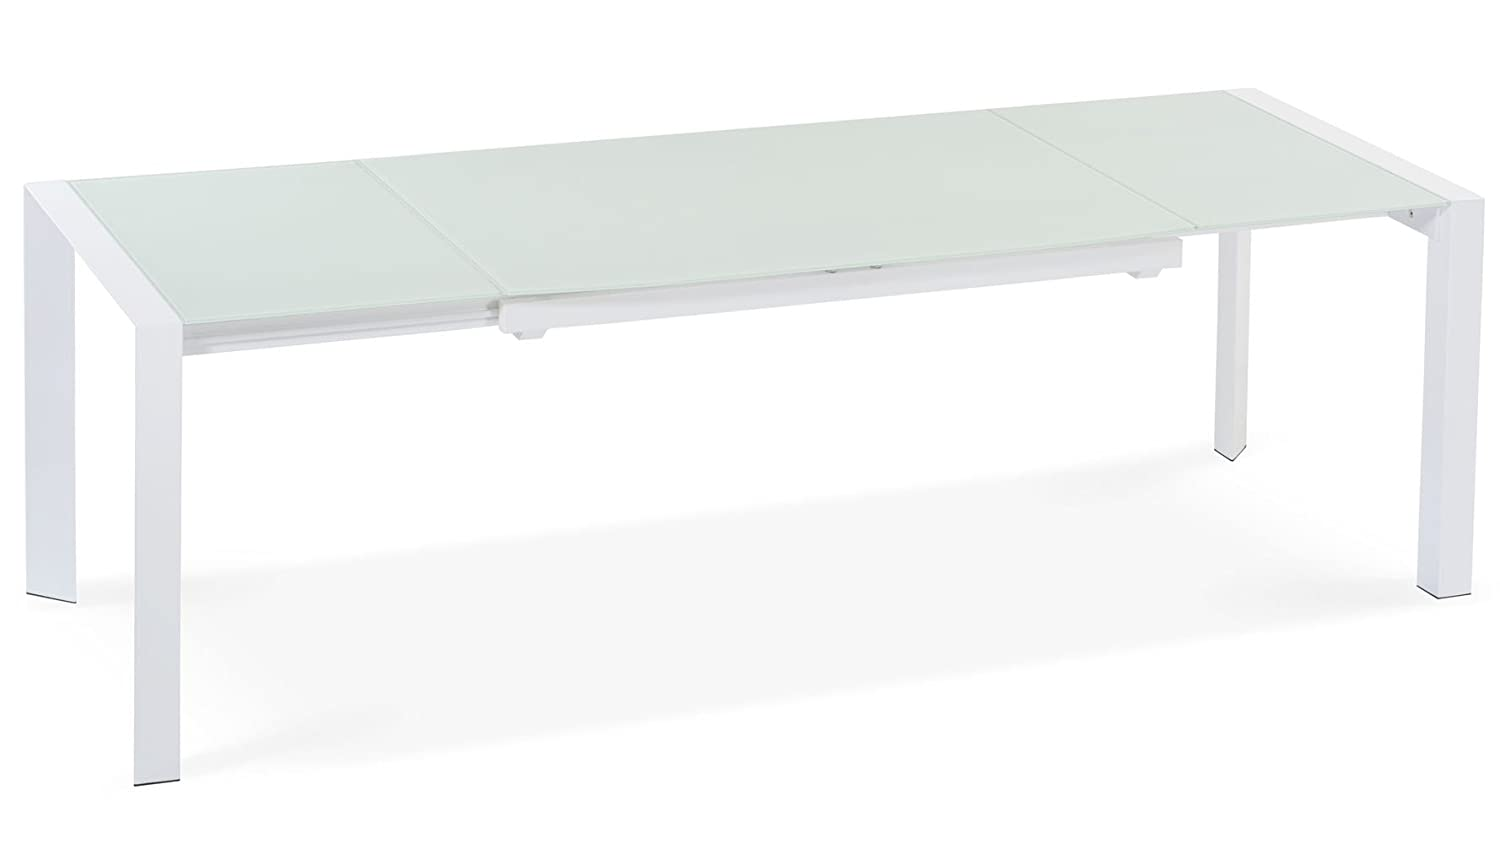 Zuri Furniture Alton Extending Modern Dining Table with White Glass Top